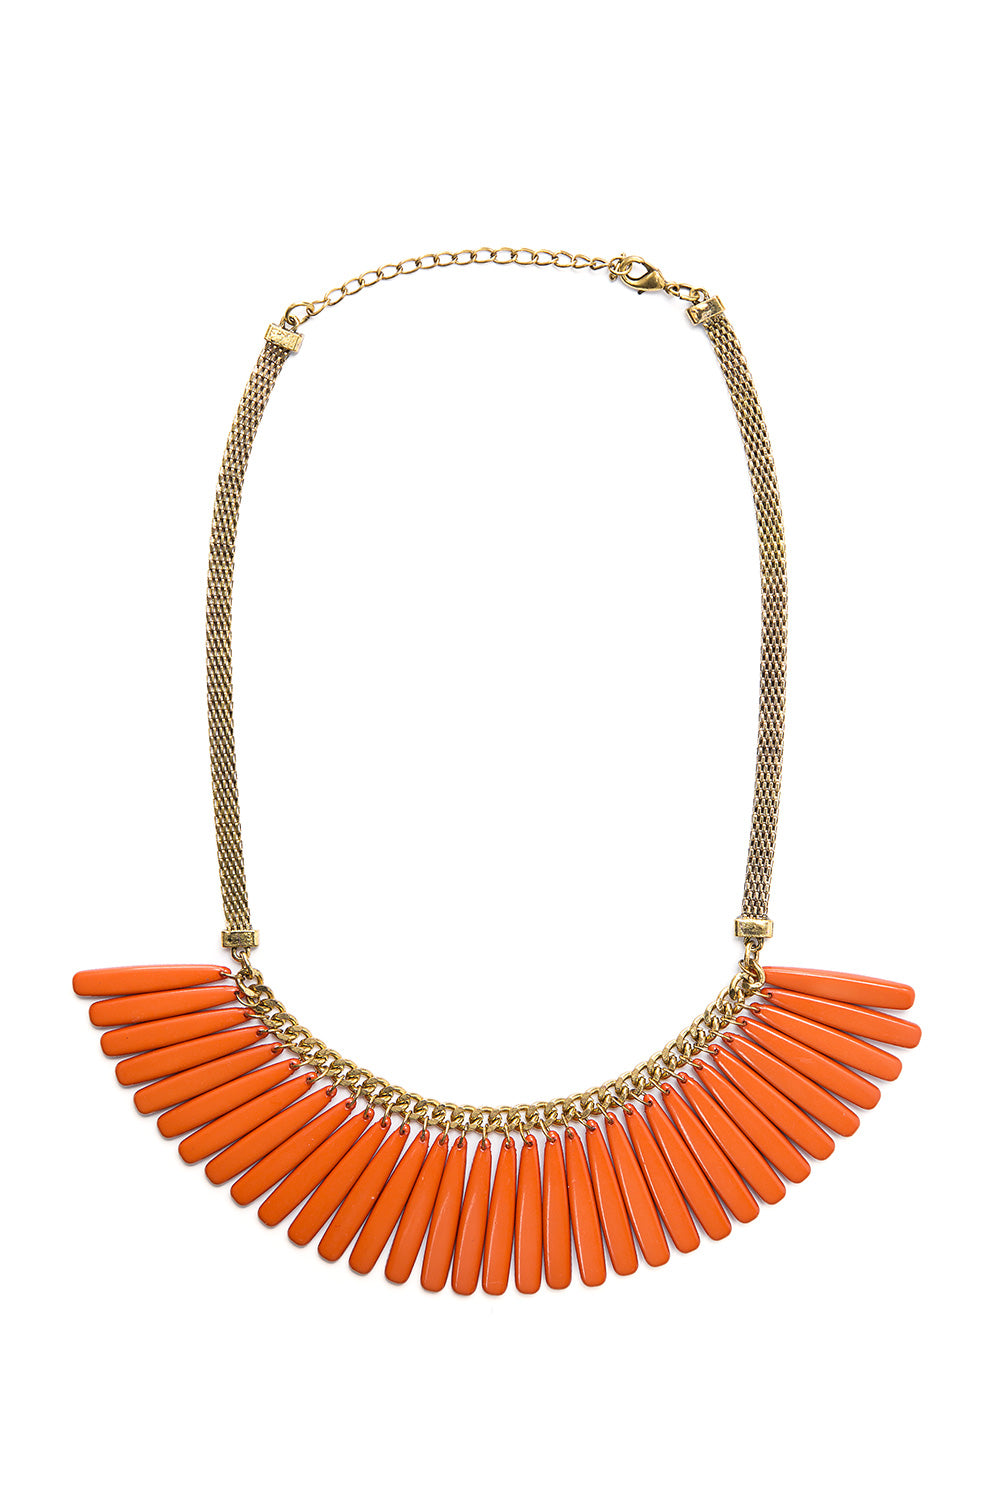 Type 3 Fire Fringe Necklace